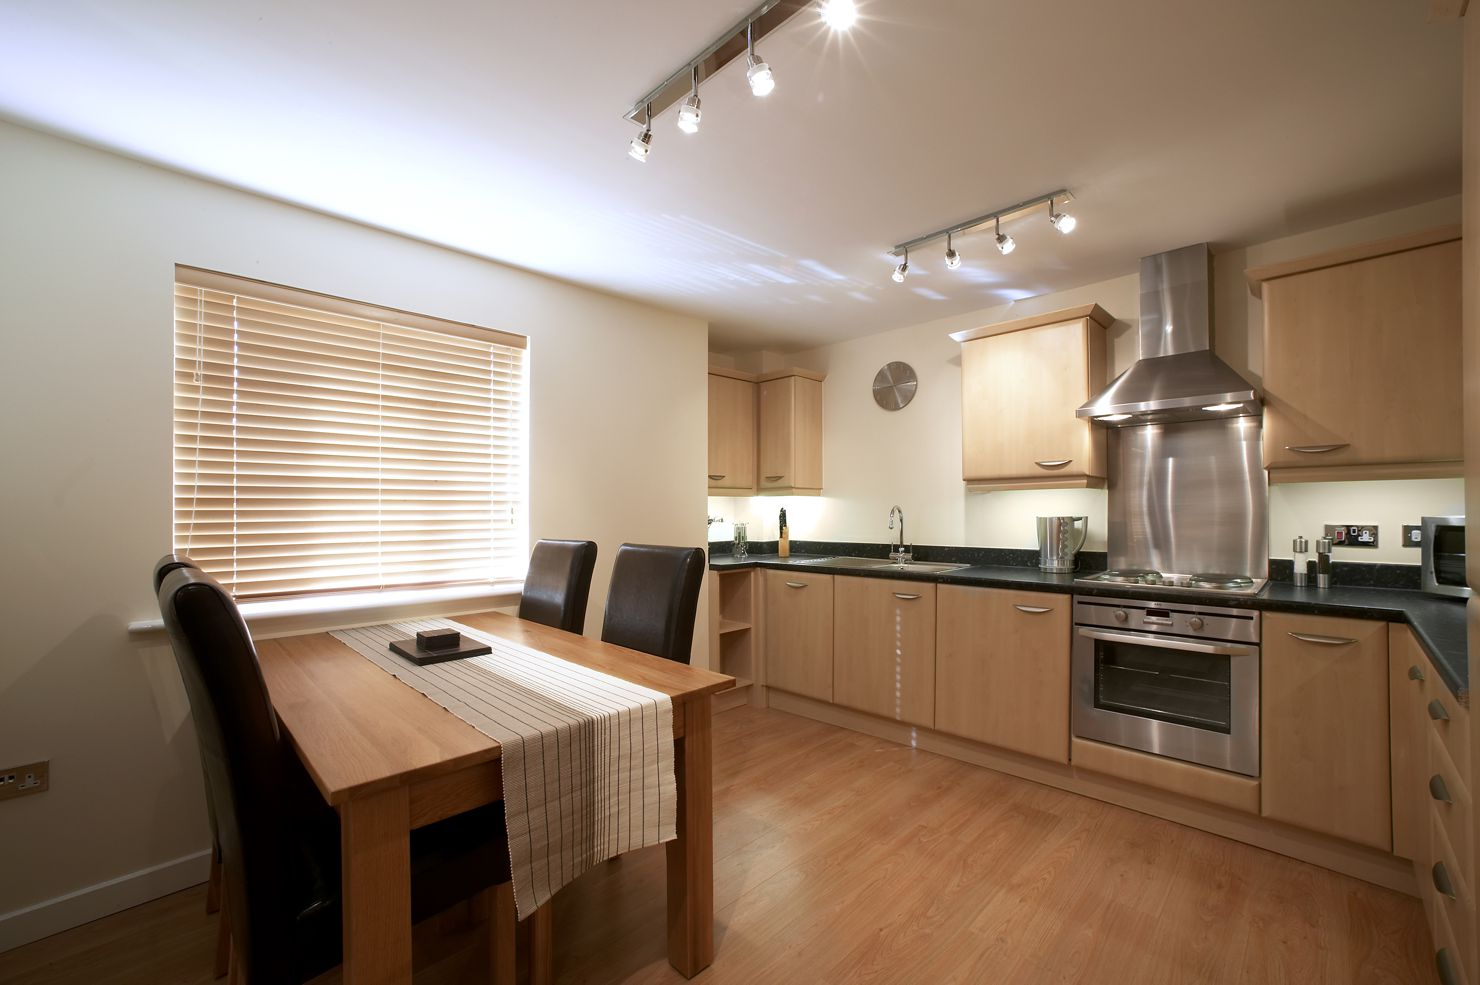 Southwich-House-Self-Catering-Accommodation-Swindon---Serviced-Apartments-Swindon-UK-|-Urban-Stay